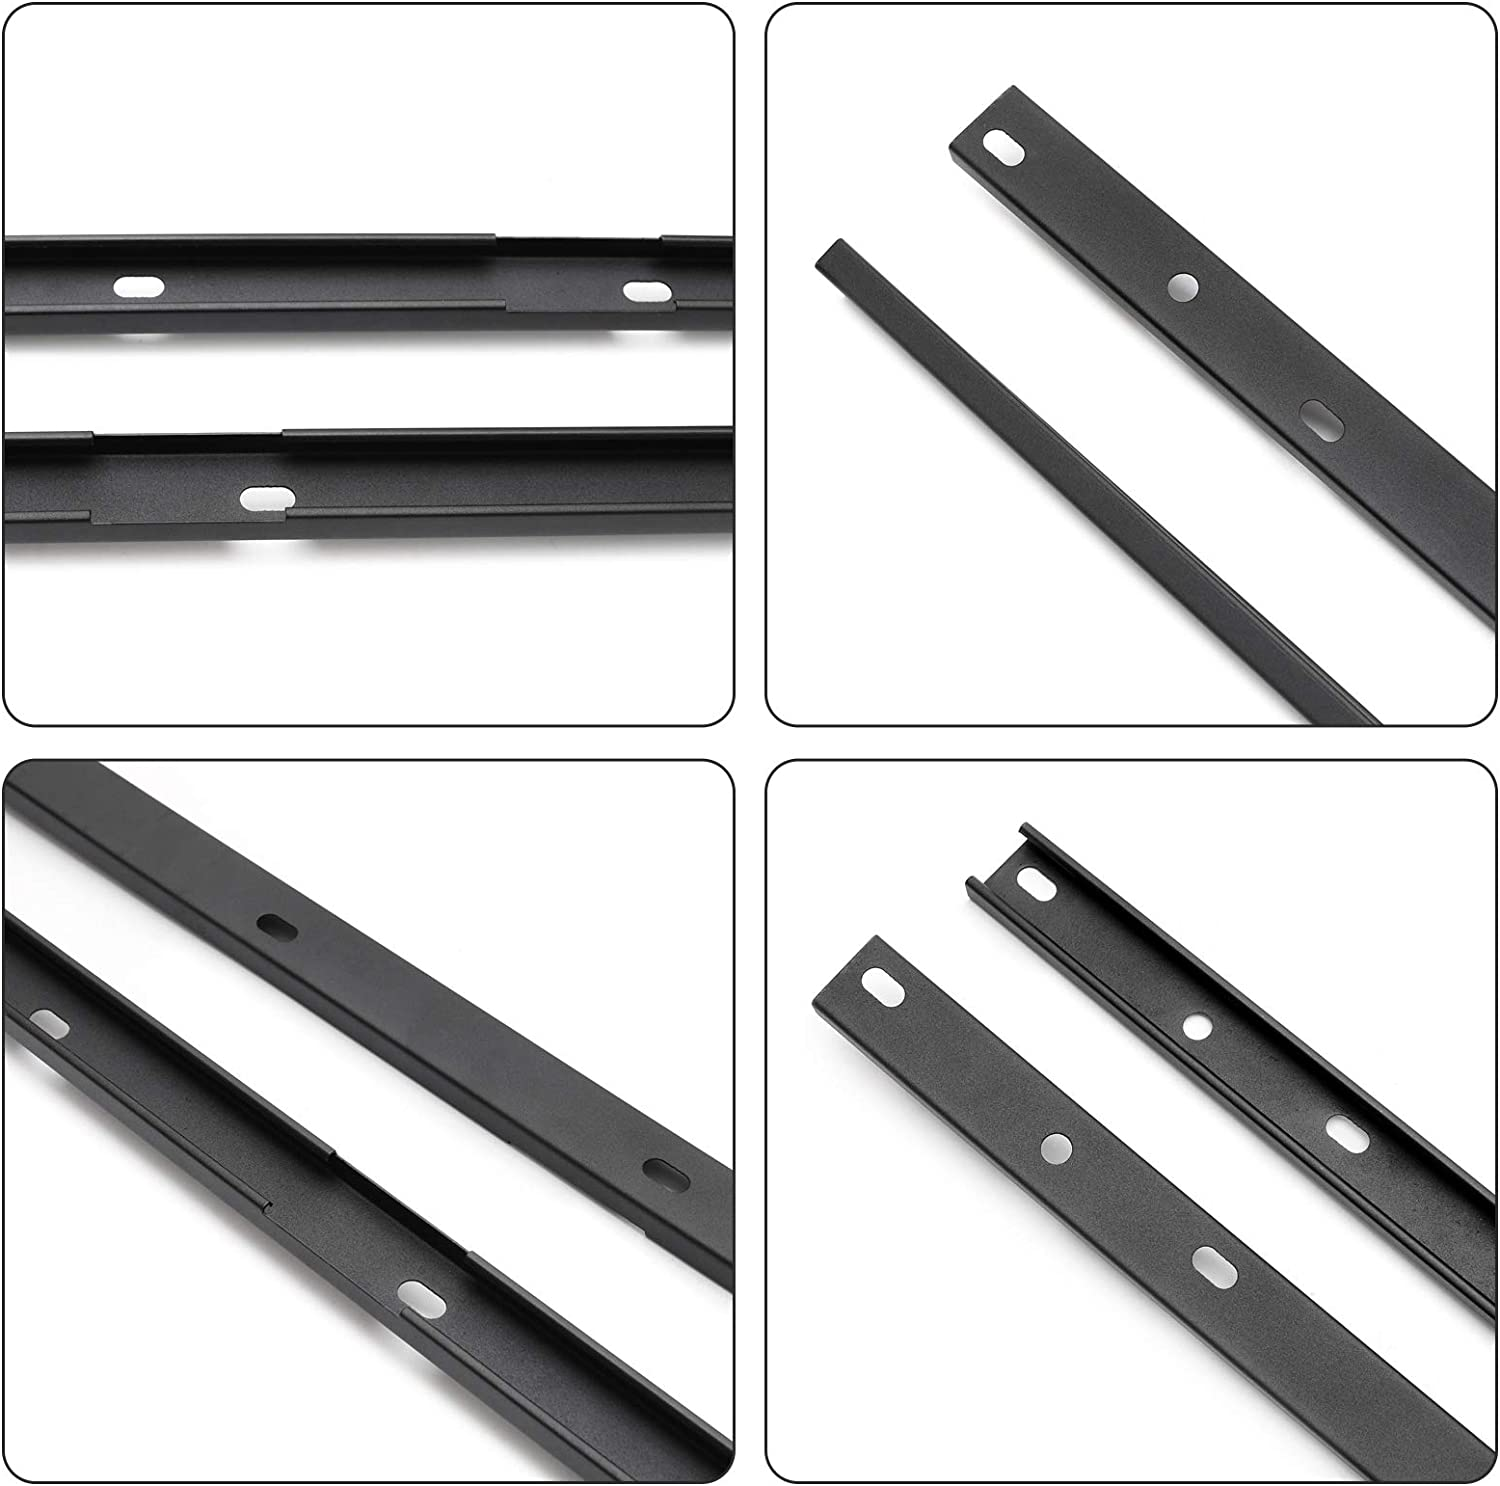 Modifying Factory Style Crossbars Aluminum Roof Racks Cross Bars /& Side Rails C Channel Combo Kit Cargo Luggage Carrier for 2009-2017 Chevy Chevrolet Traverse